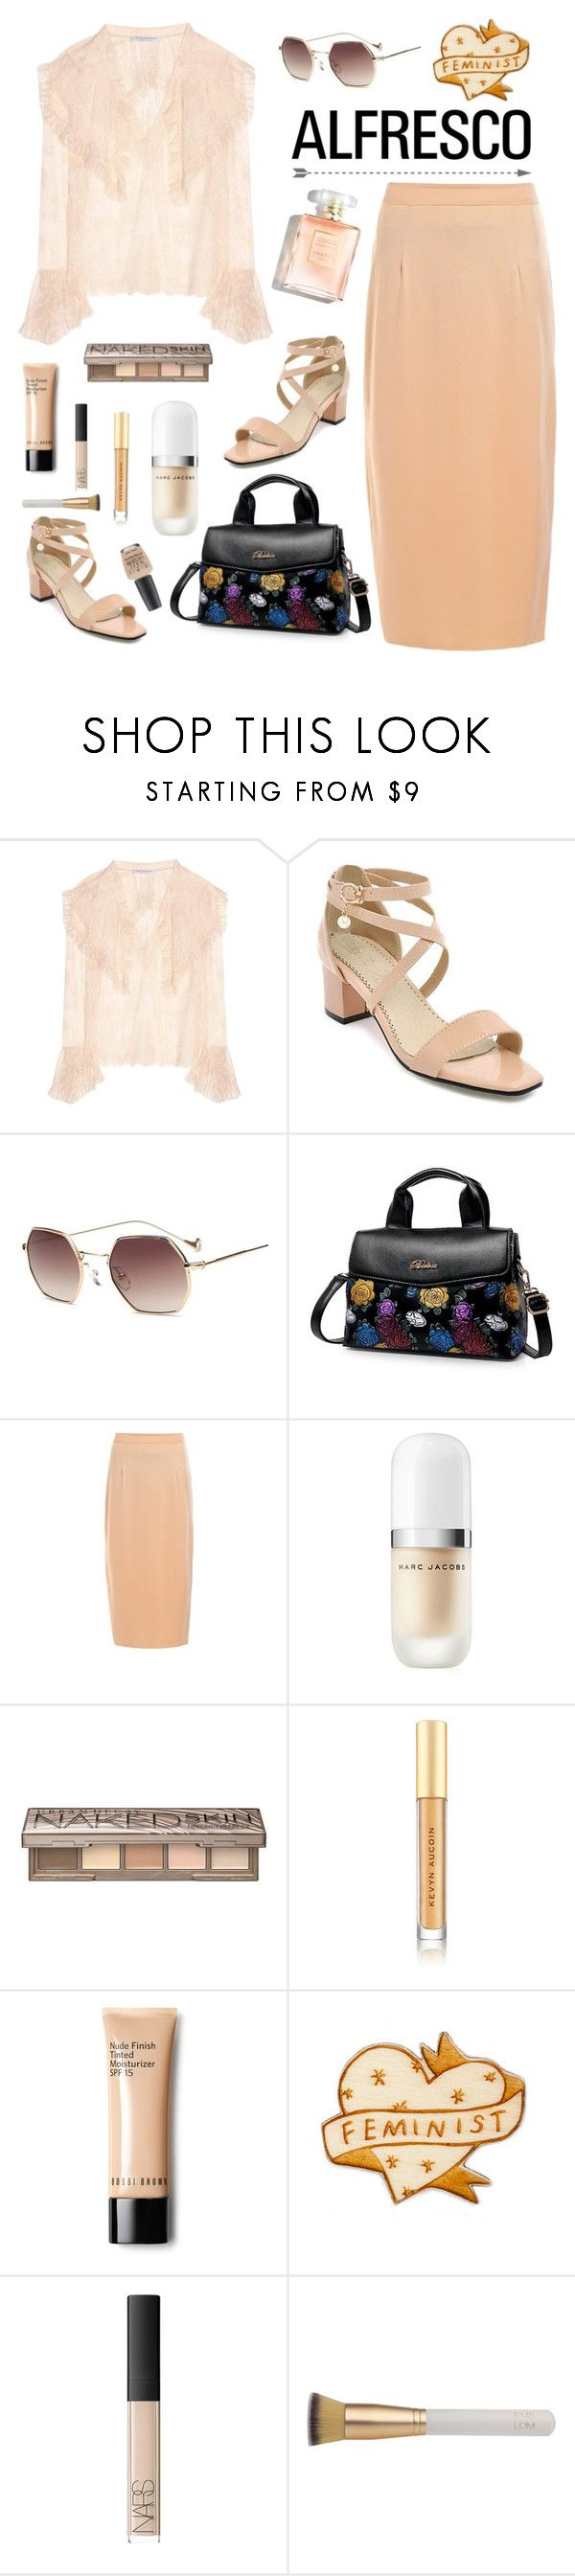 """""""Alfresco Dining"""" by arohii ❤ liked on Polyvore featuring Philosophy di Lorenzo Serafini, Marc Jacobs, Urban Decay, Kevyn Aucoin, Bobbi Brown Cosmetics, NARS Cosmetics, Eve Lom, OPI and alfrescodining"""